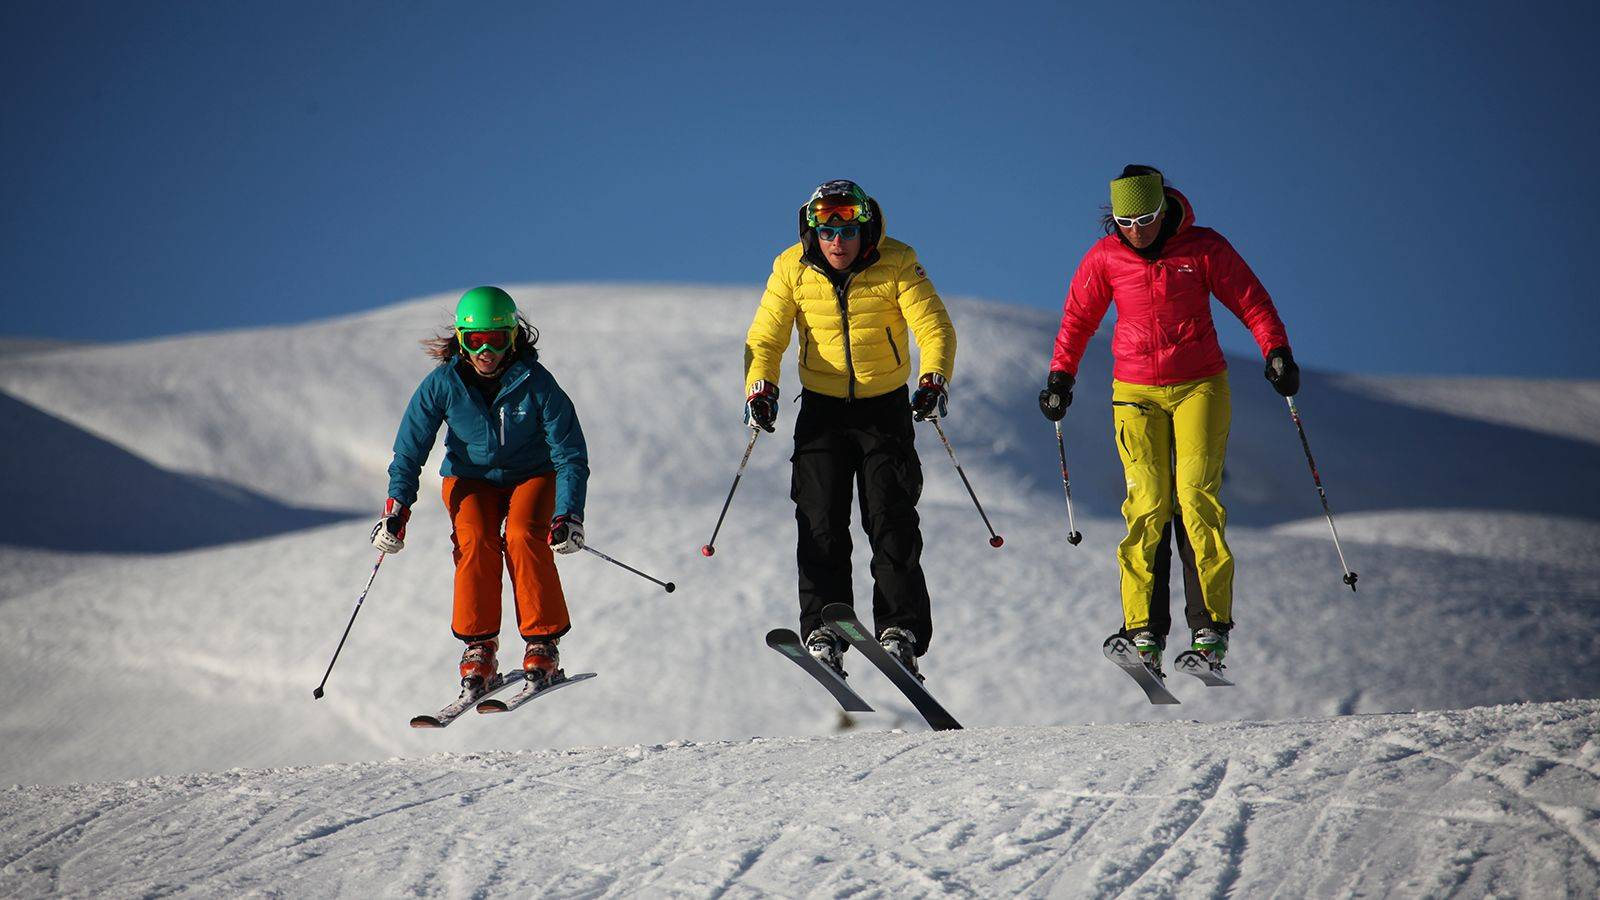 A family during a ski jump on the slopes of Passo San Pellegrino